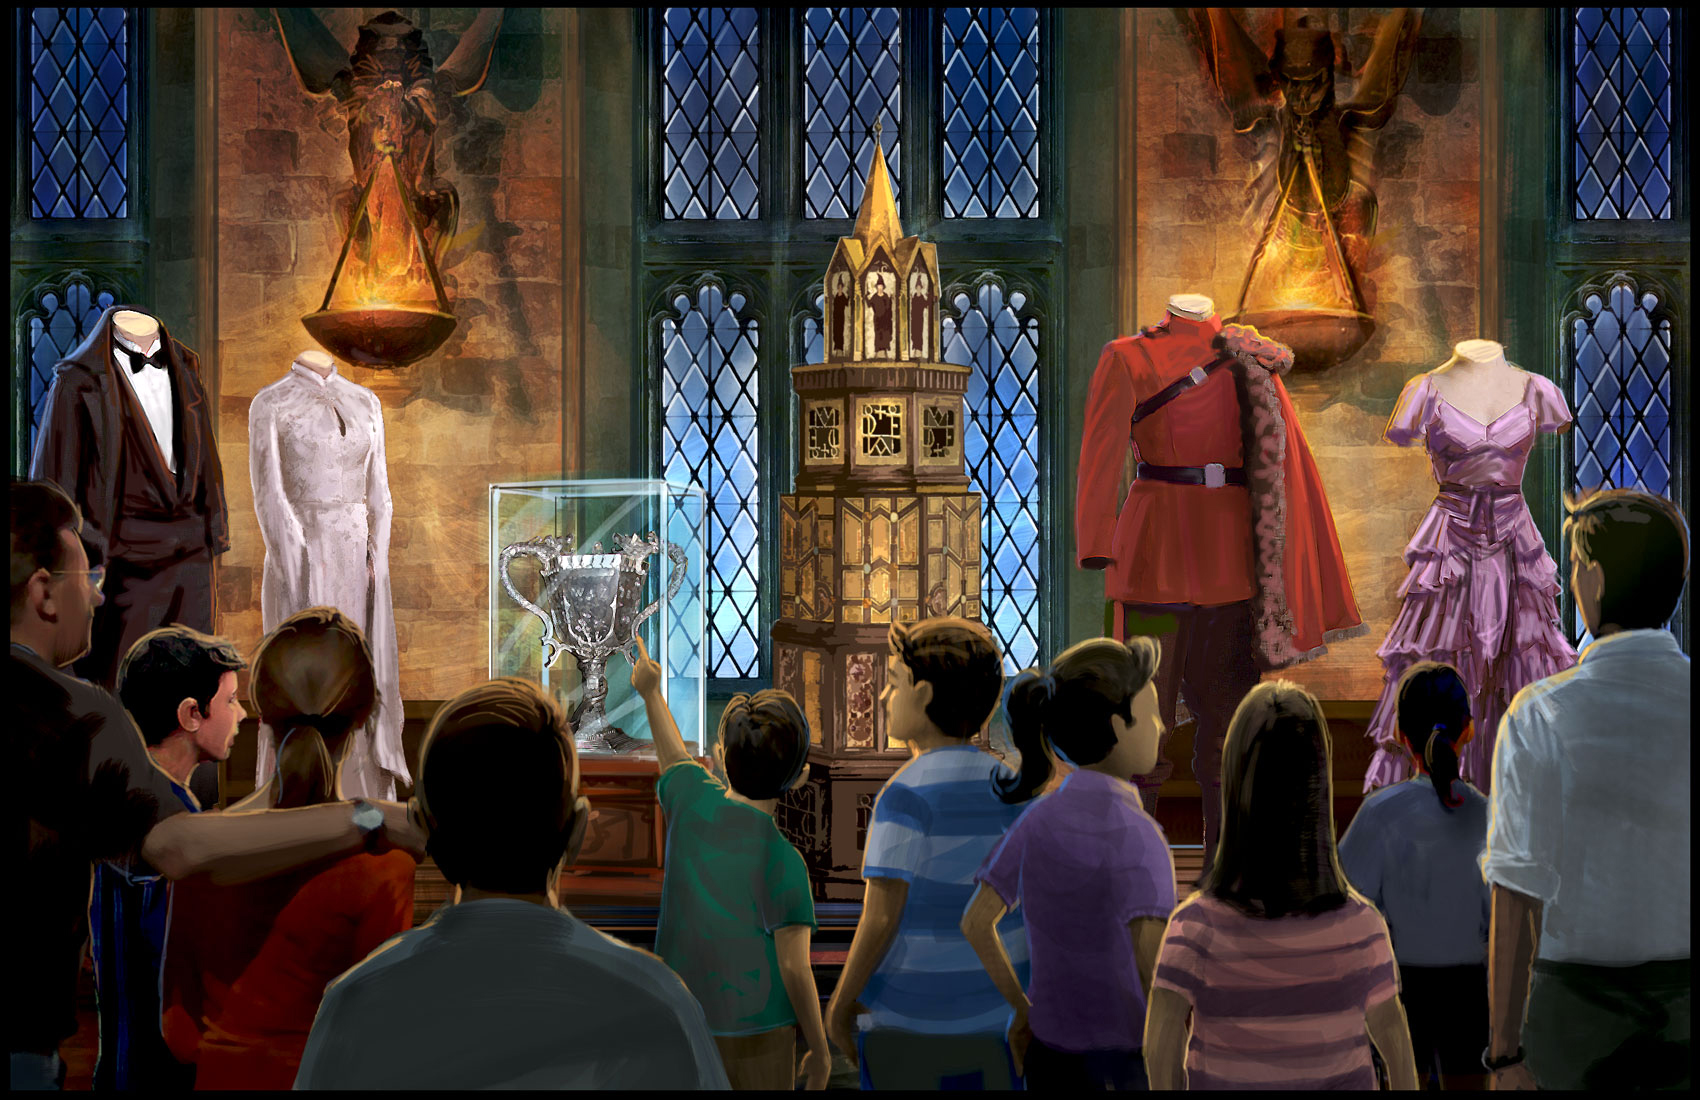 Gran comedor harry potter la exhibici n blog hogwarts for Comedor harry potter